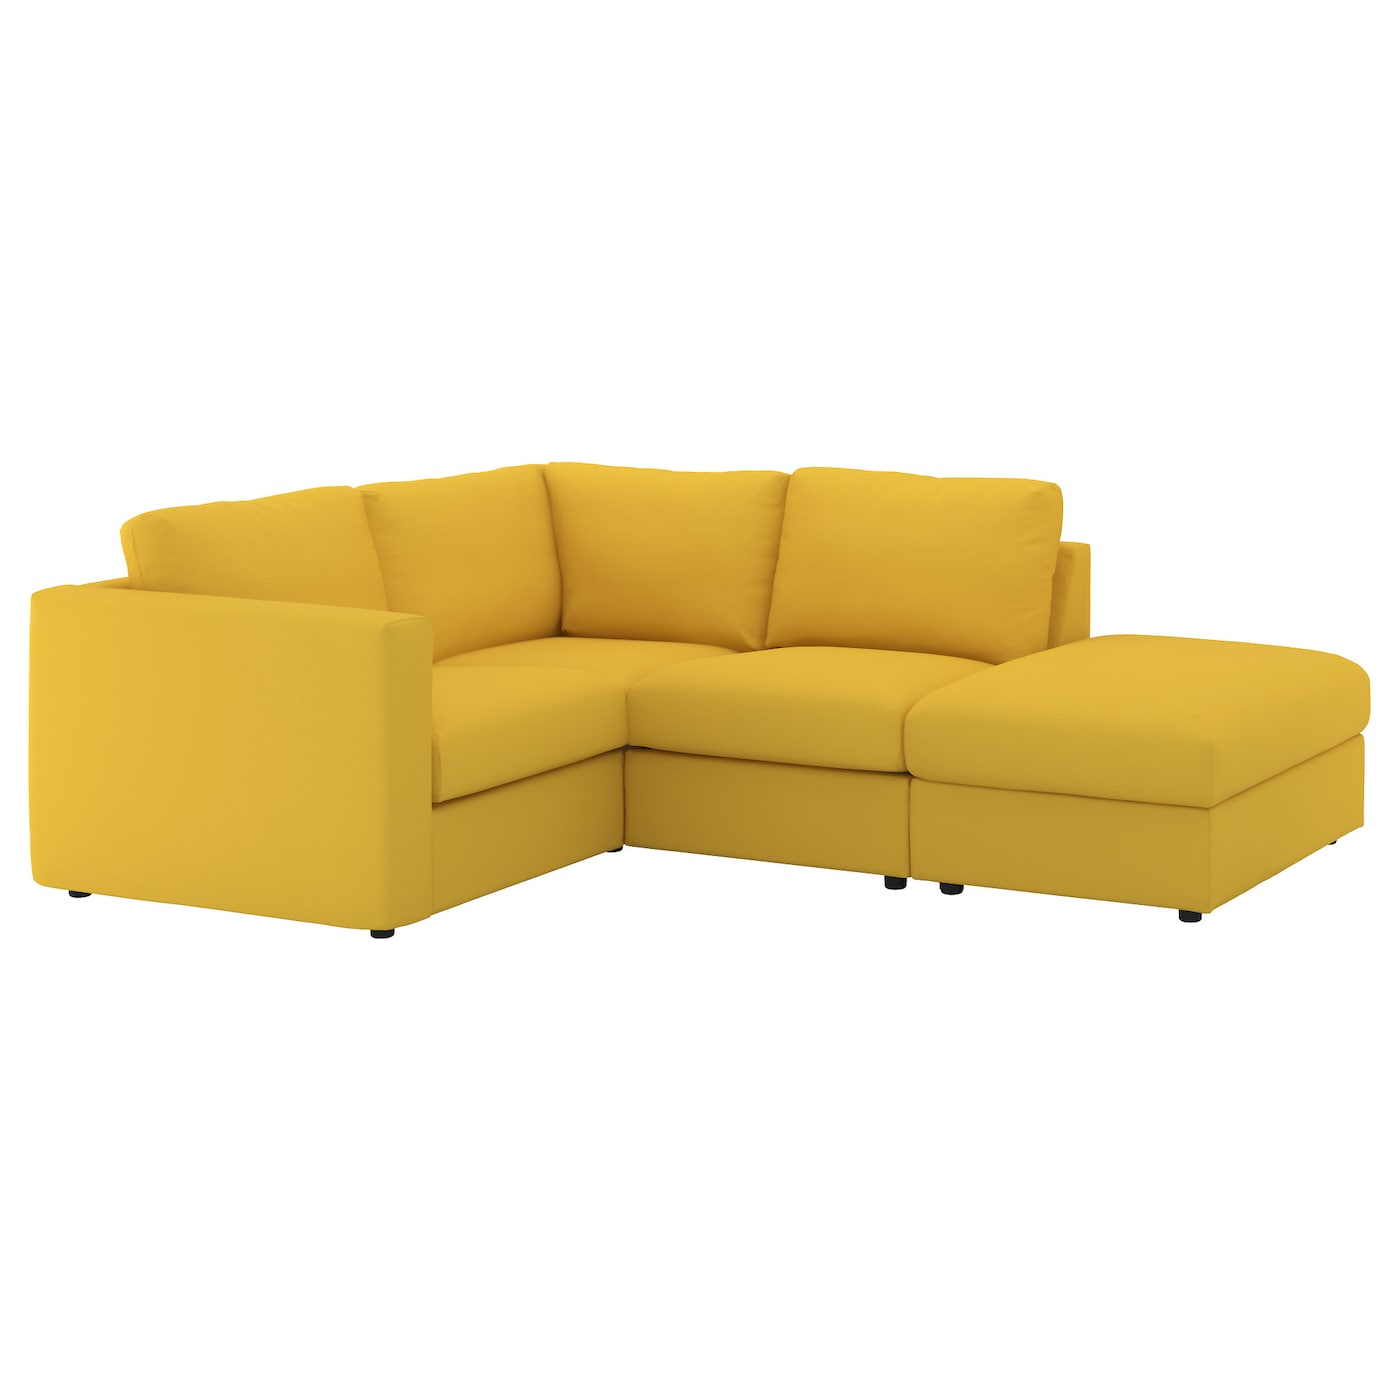 VIMLE Corner sofa 3 seat With open end gräsbo golden yellow IKEA